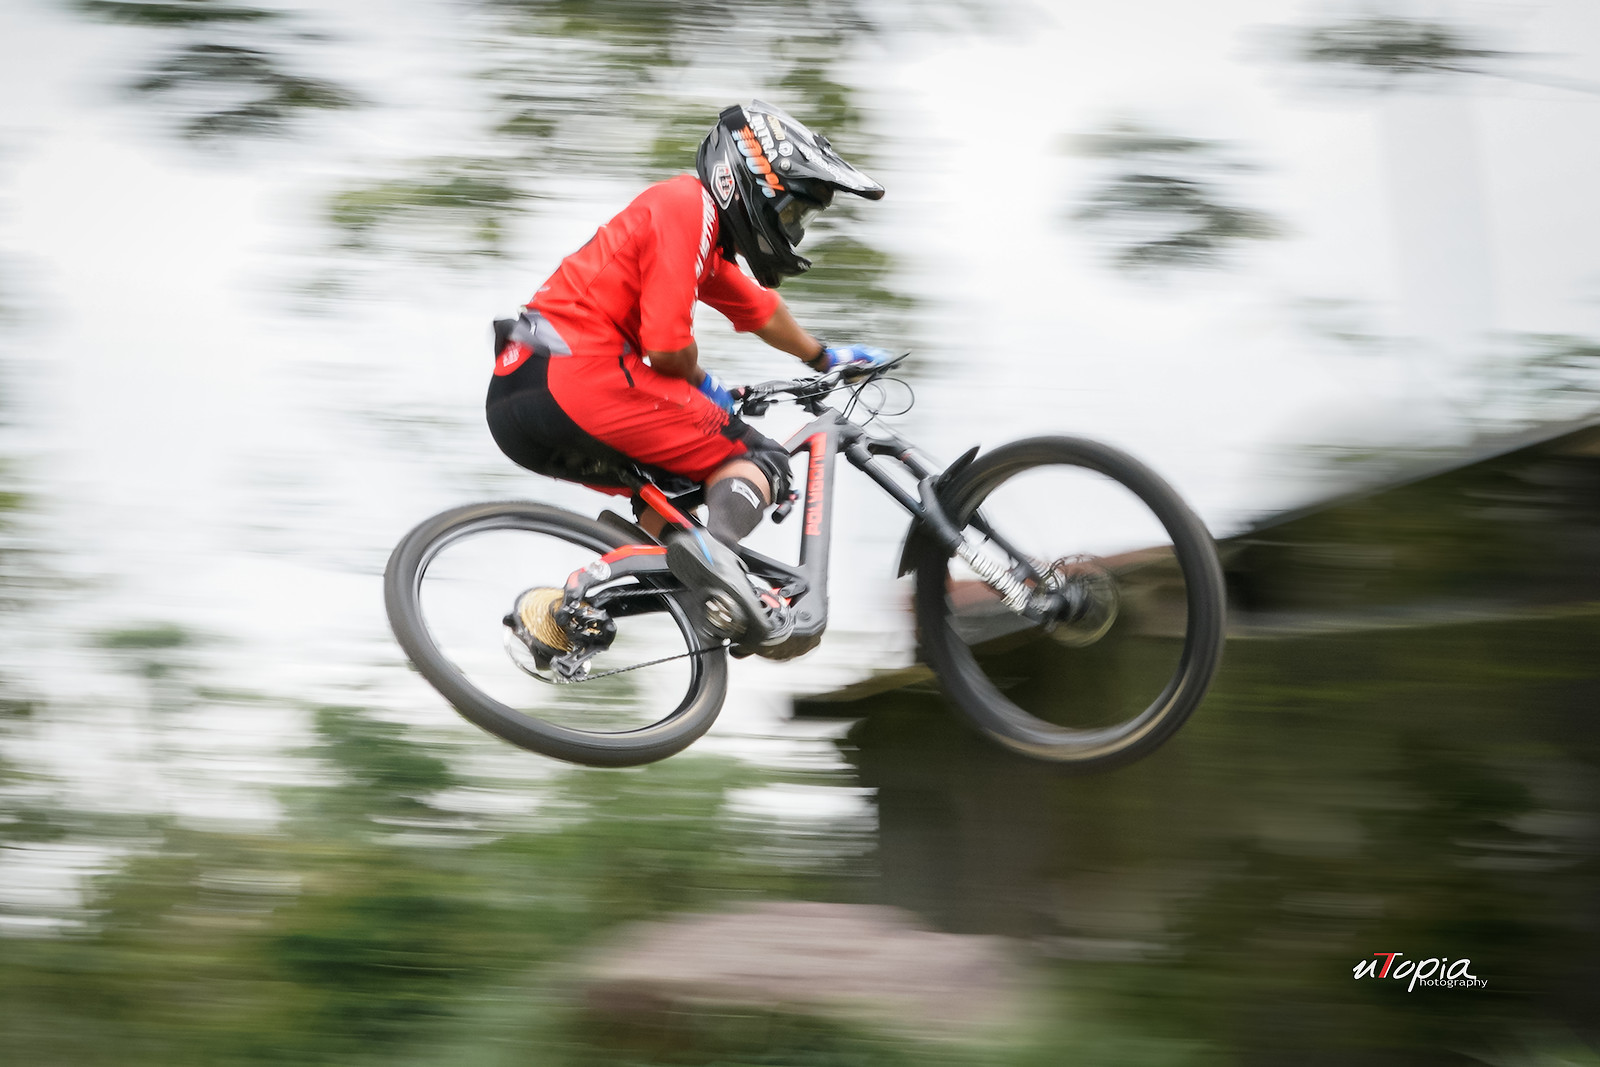 Keep calm and go flat  - utopiaarch - Mountain Biking Pictures - Vital MTB